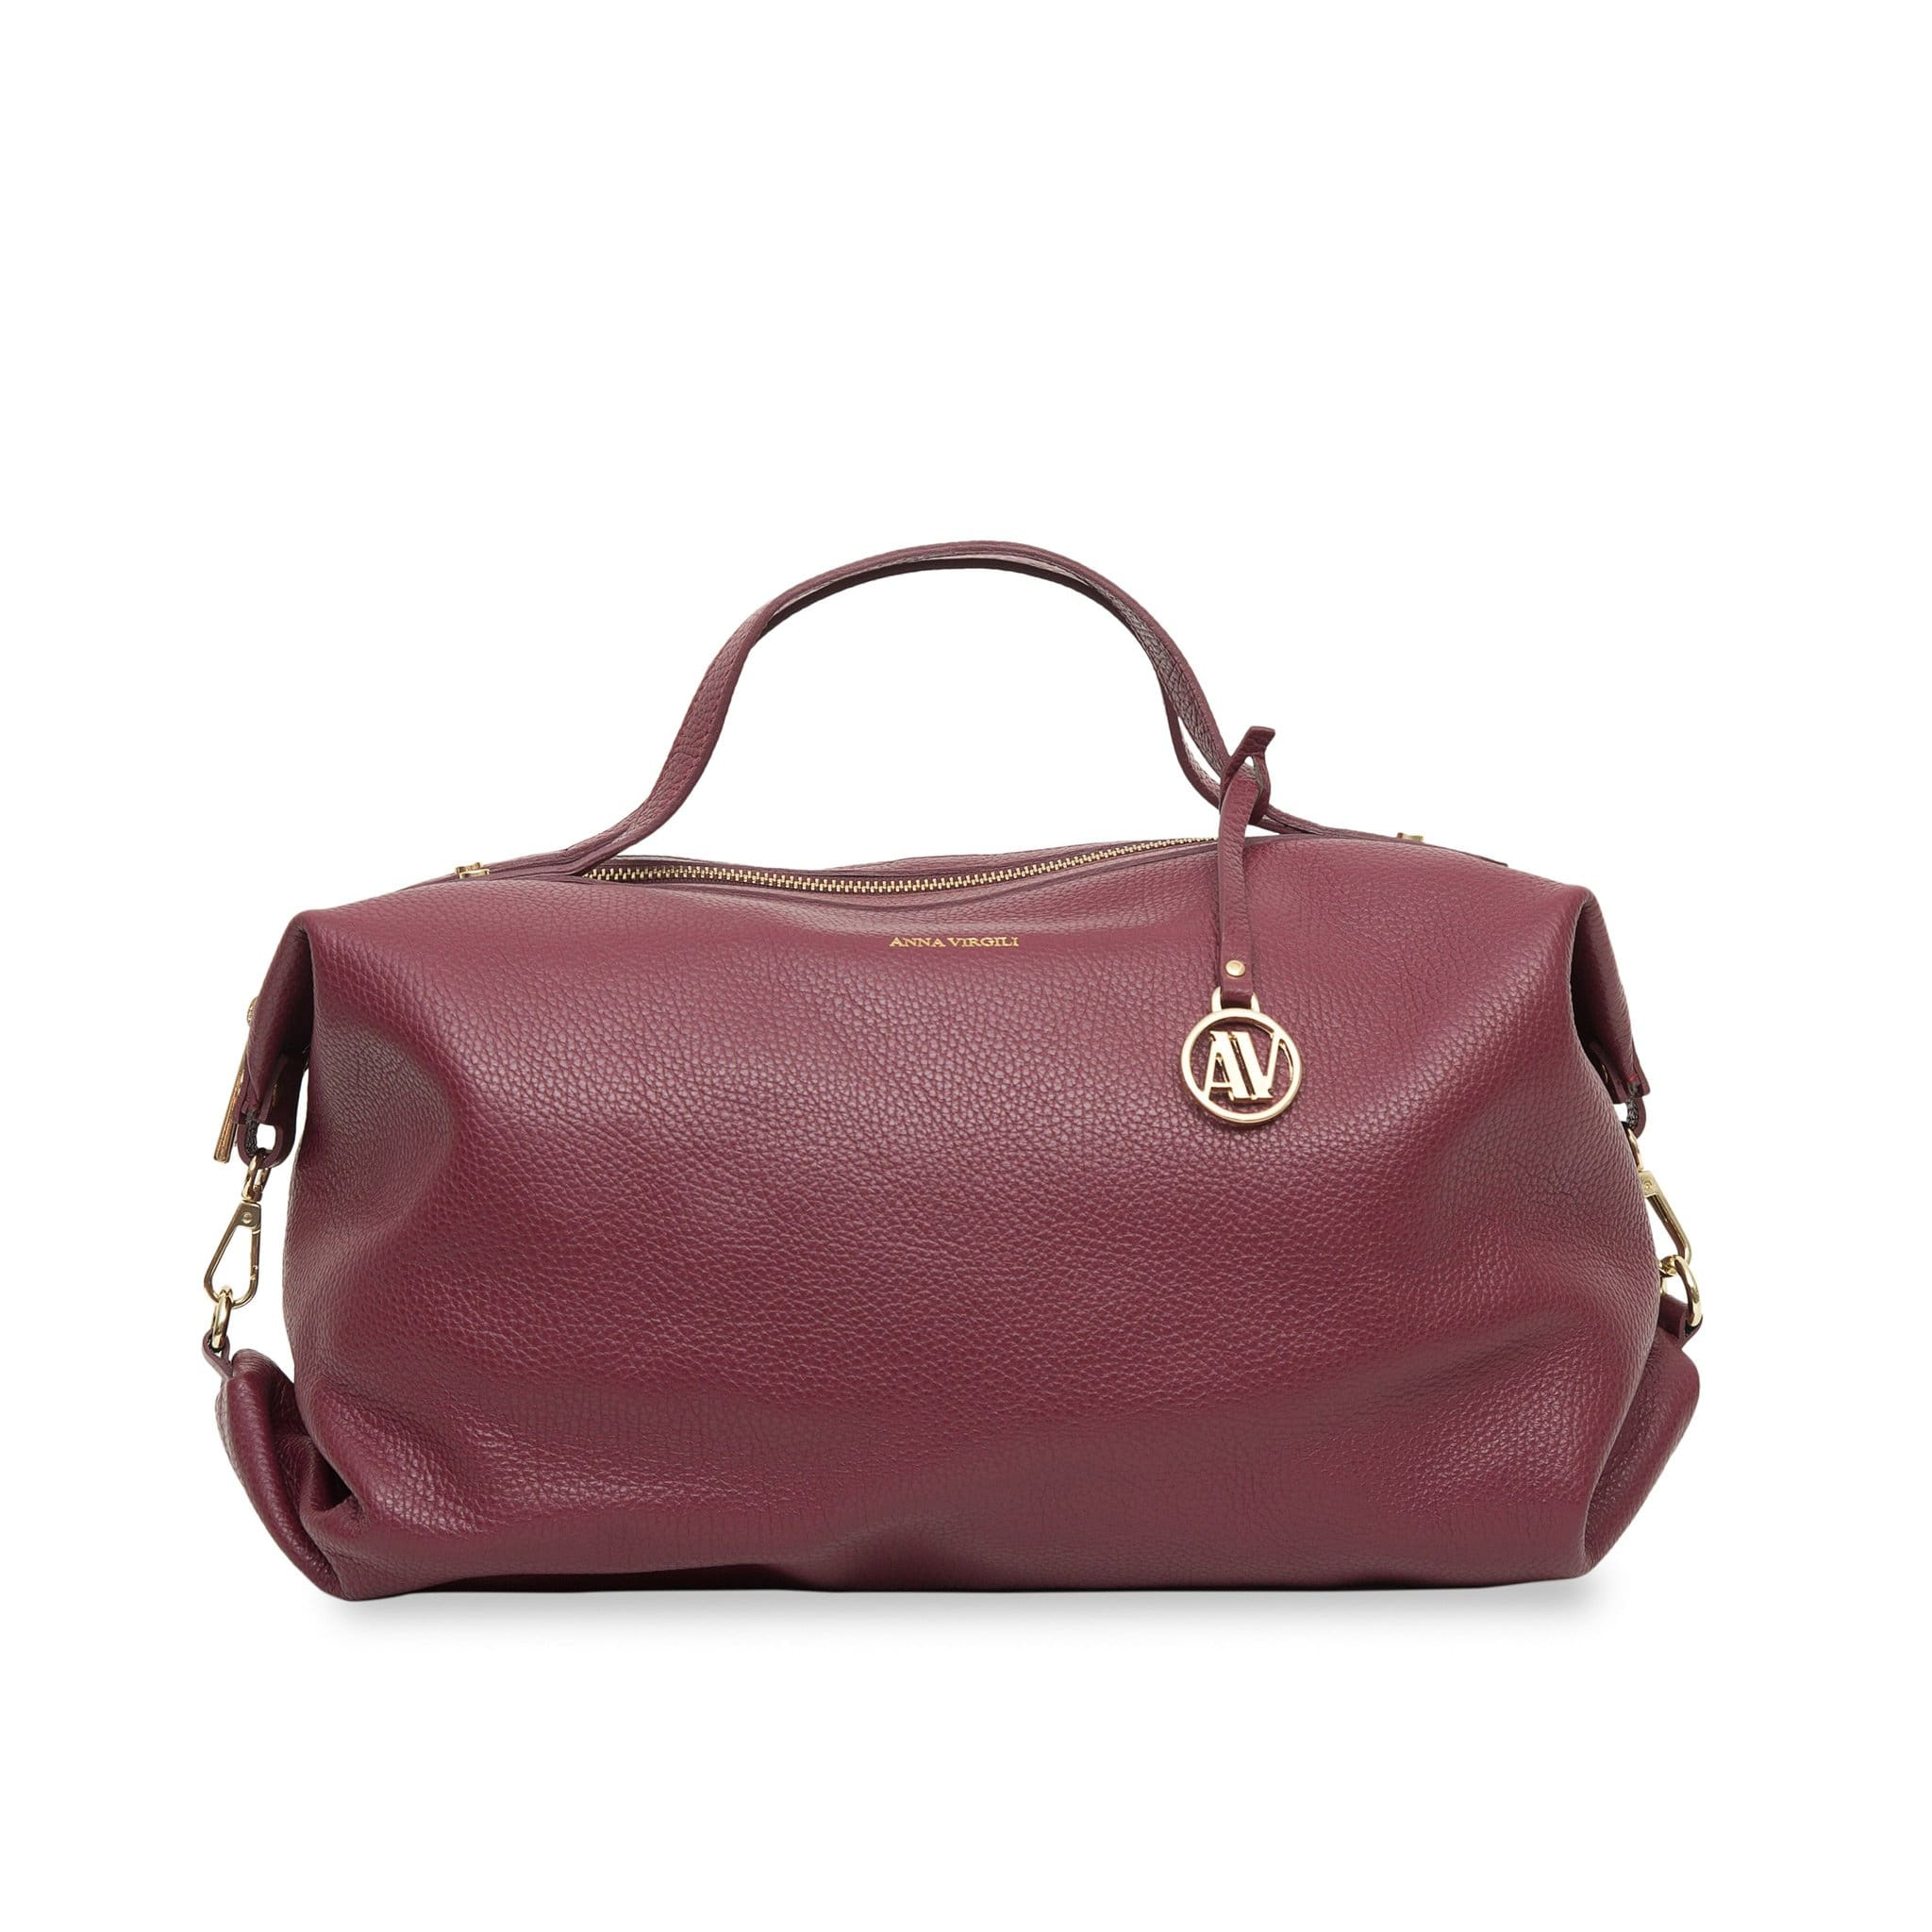 Giada Rimini Leather Handbag - Bordeaux